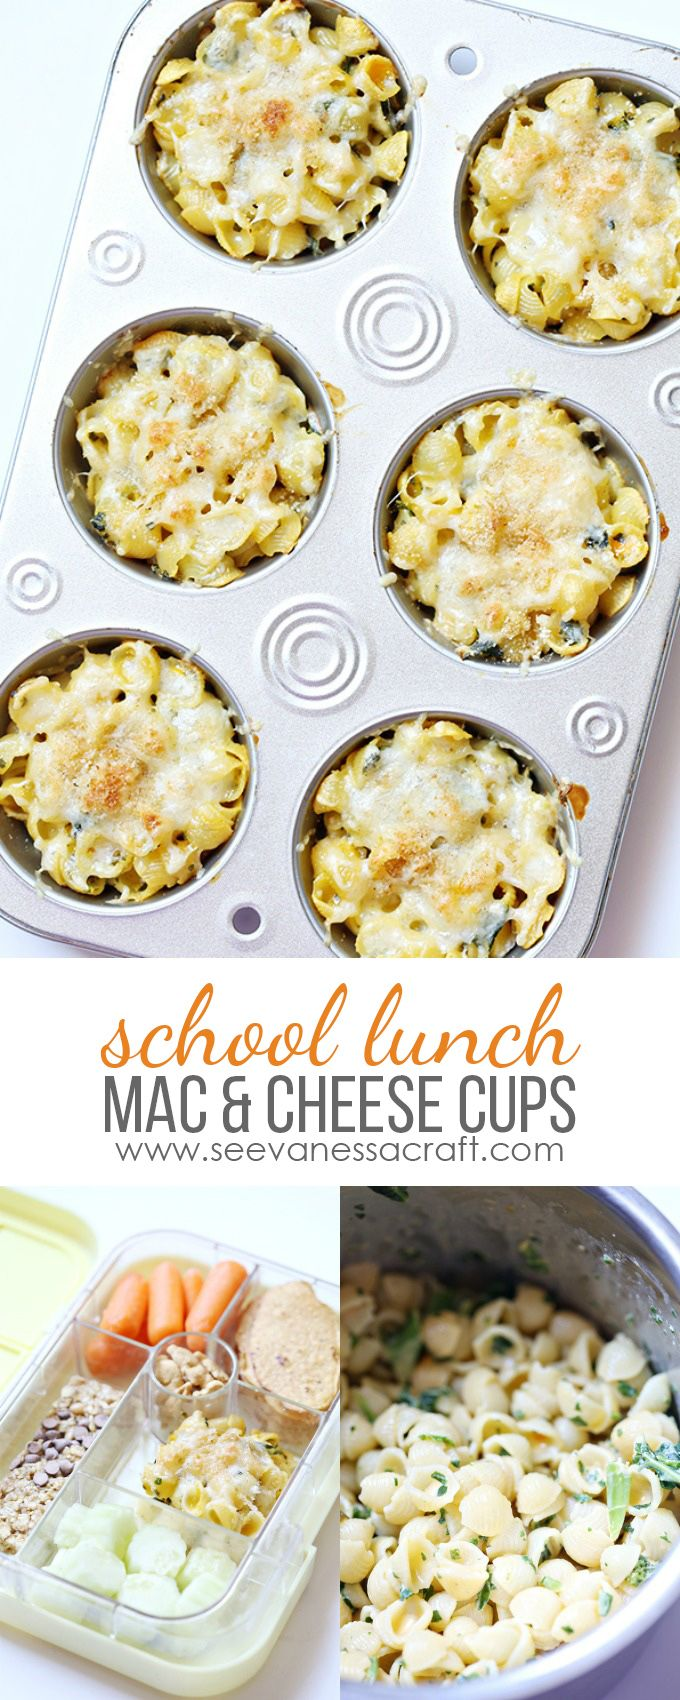 Kale and Spinach Mac and Cheese Cups for Kids